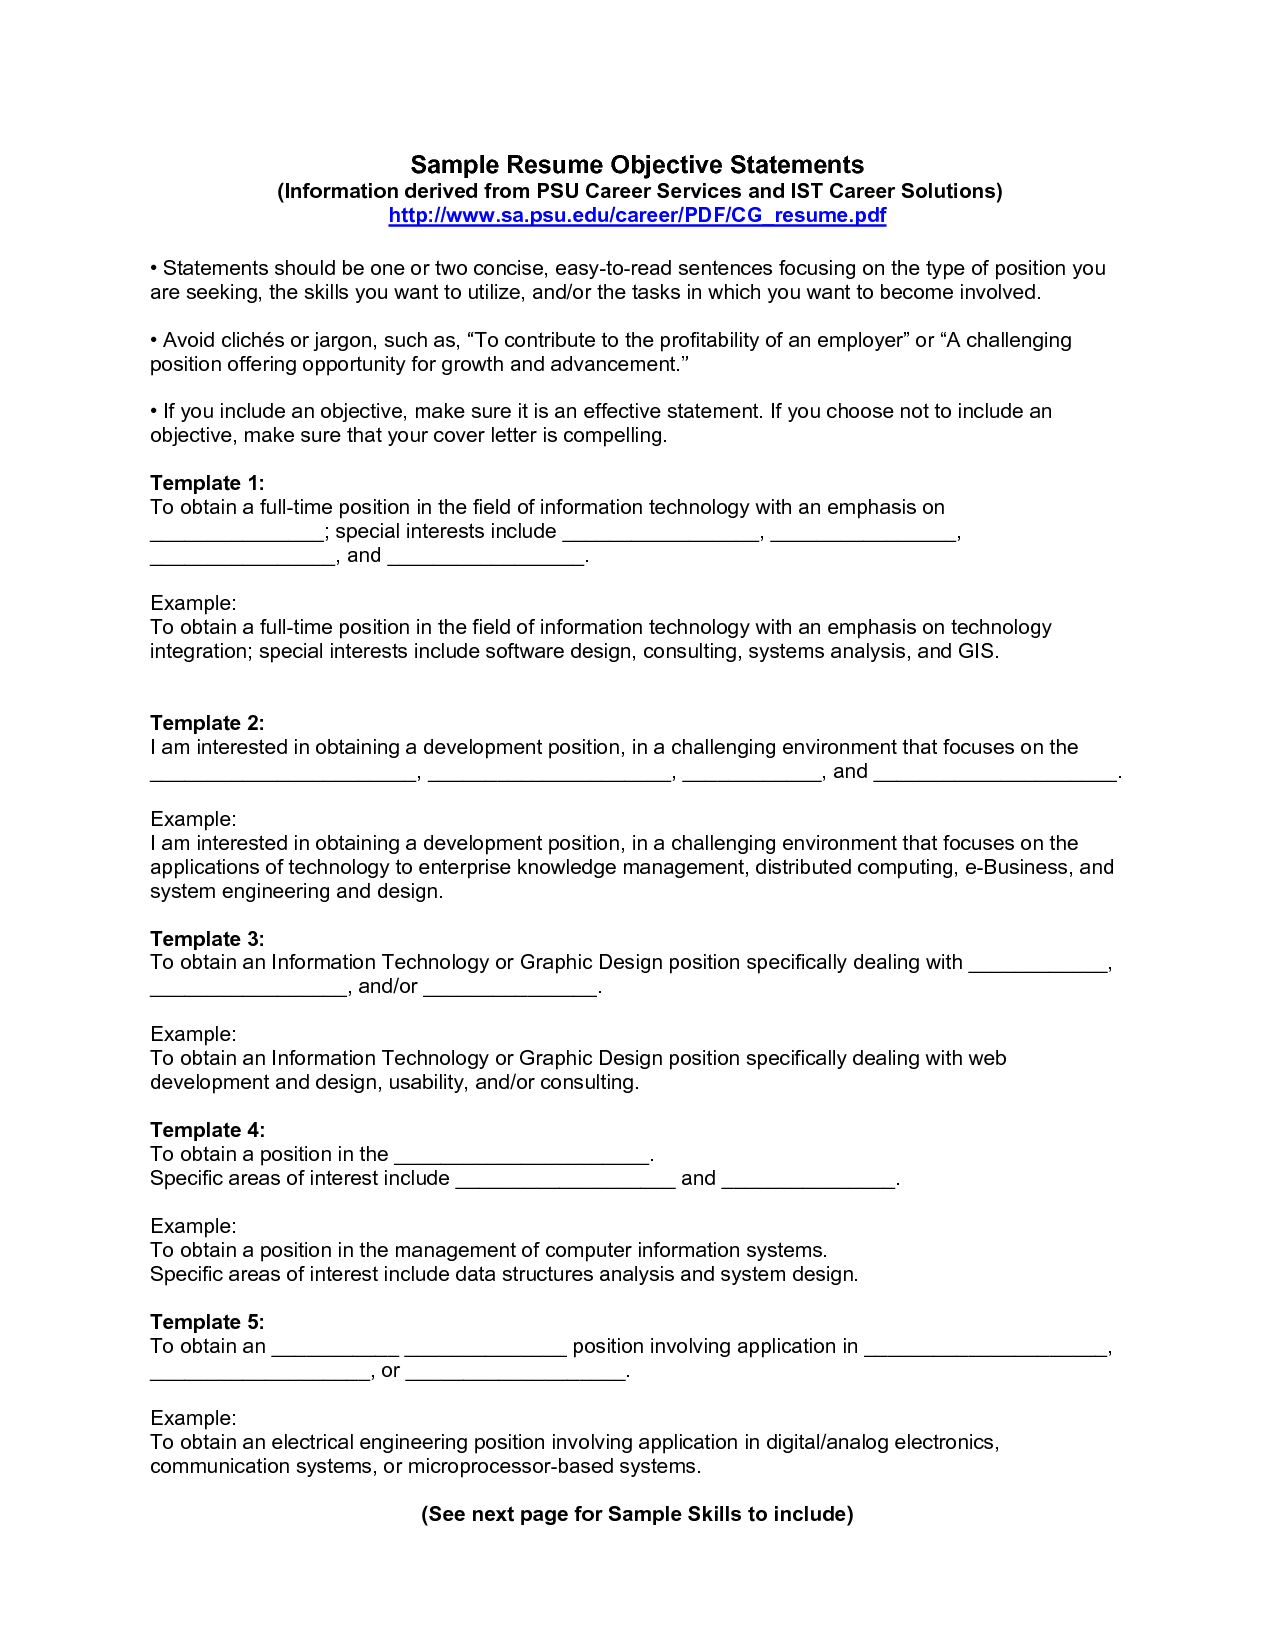 resume objective examples statement and resume career objective statement examples - Good Objective Statements For Resume